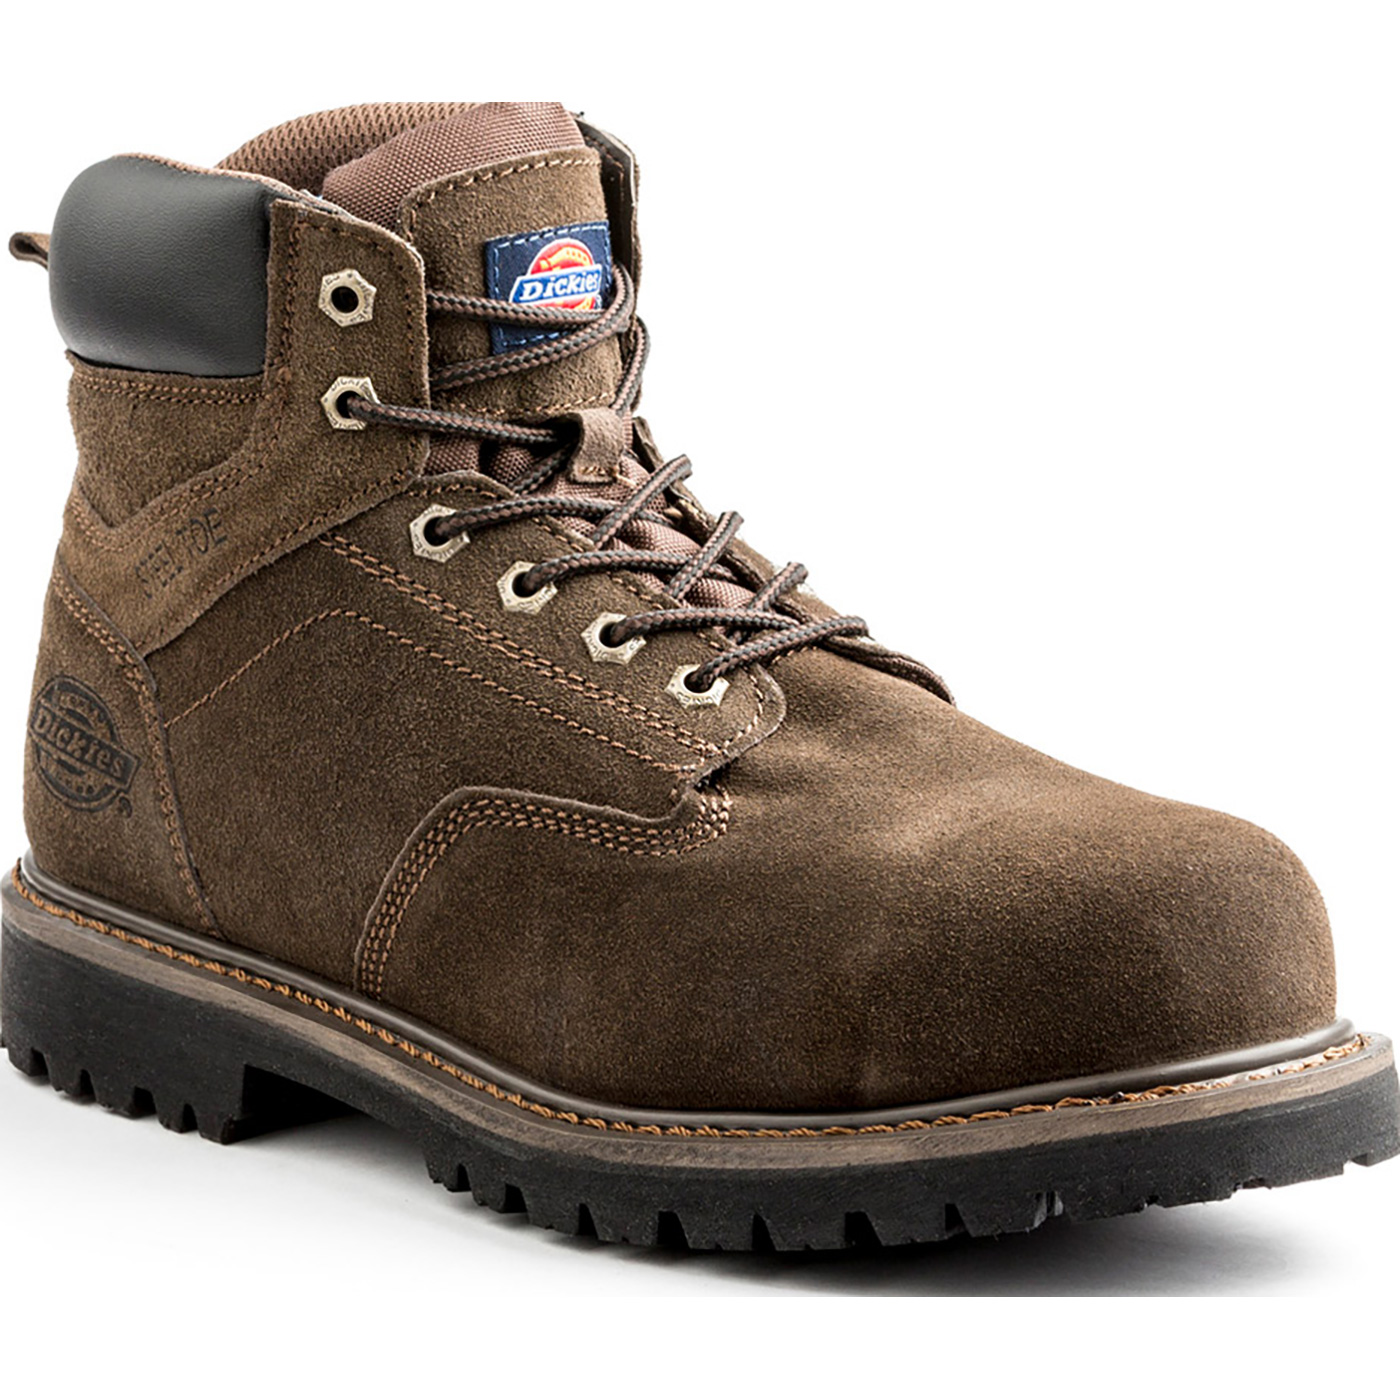 Dickies Prowler Men's Steel Toe Work Boot